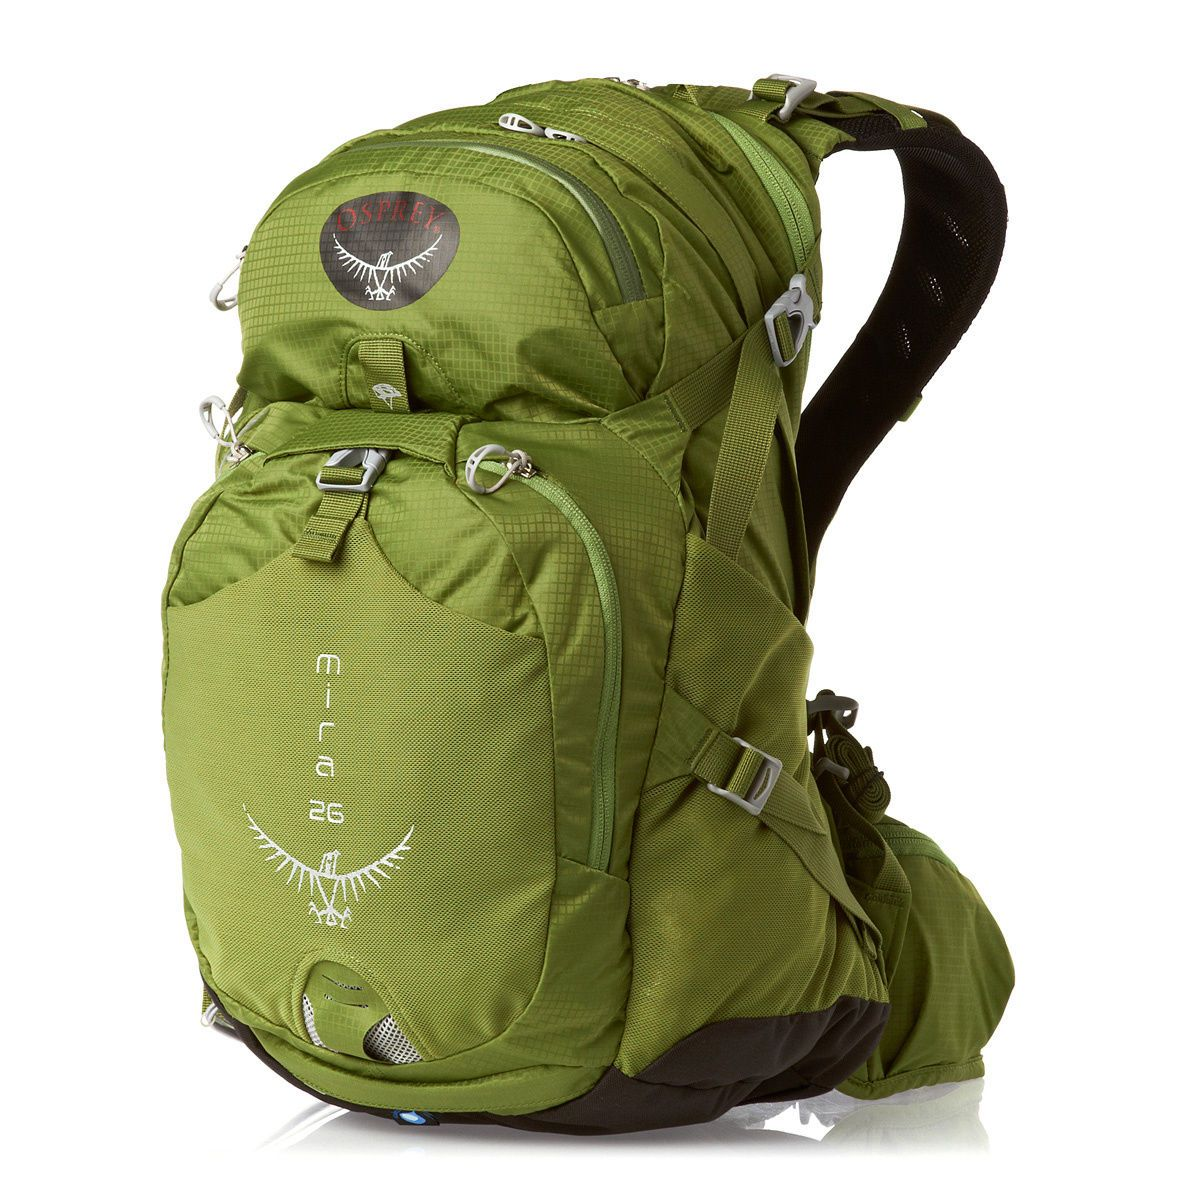 Osprey Backpacks - Osprey Mira 26 Backpack - Serene Green | Gear ...